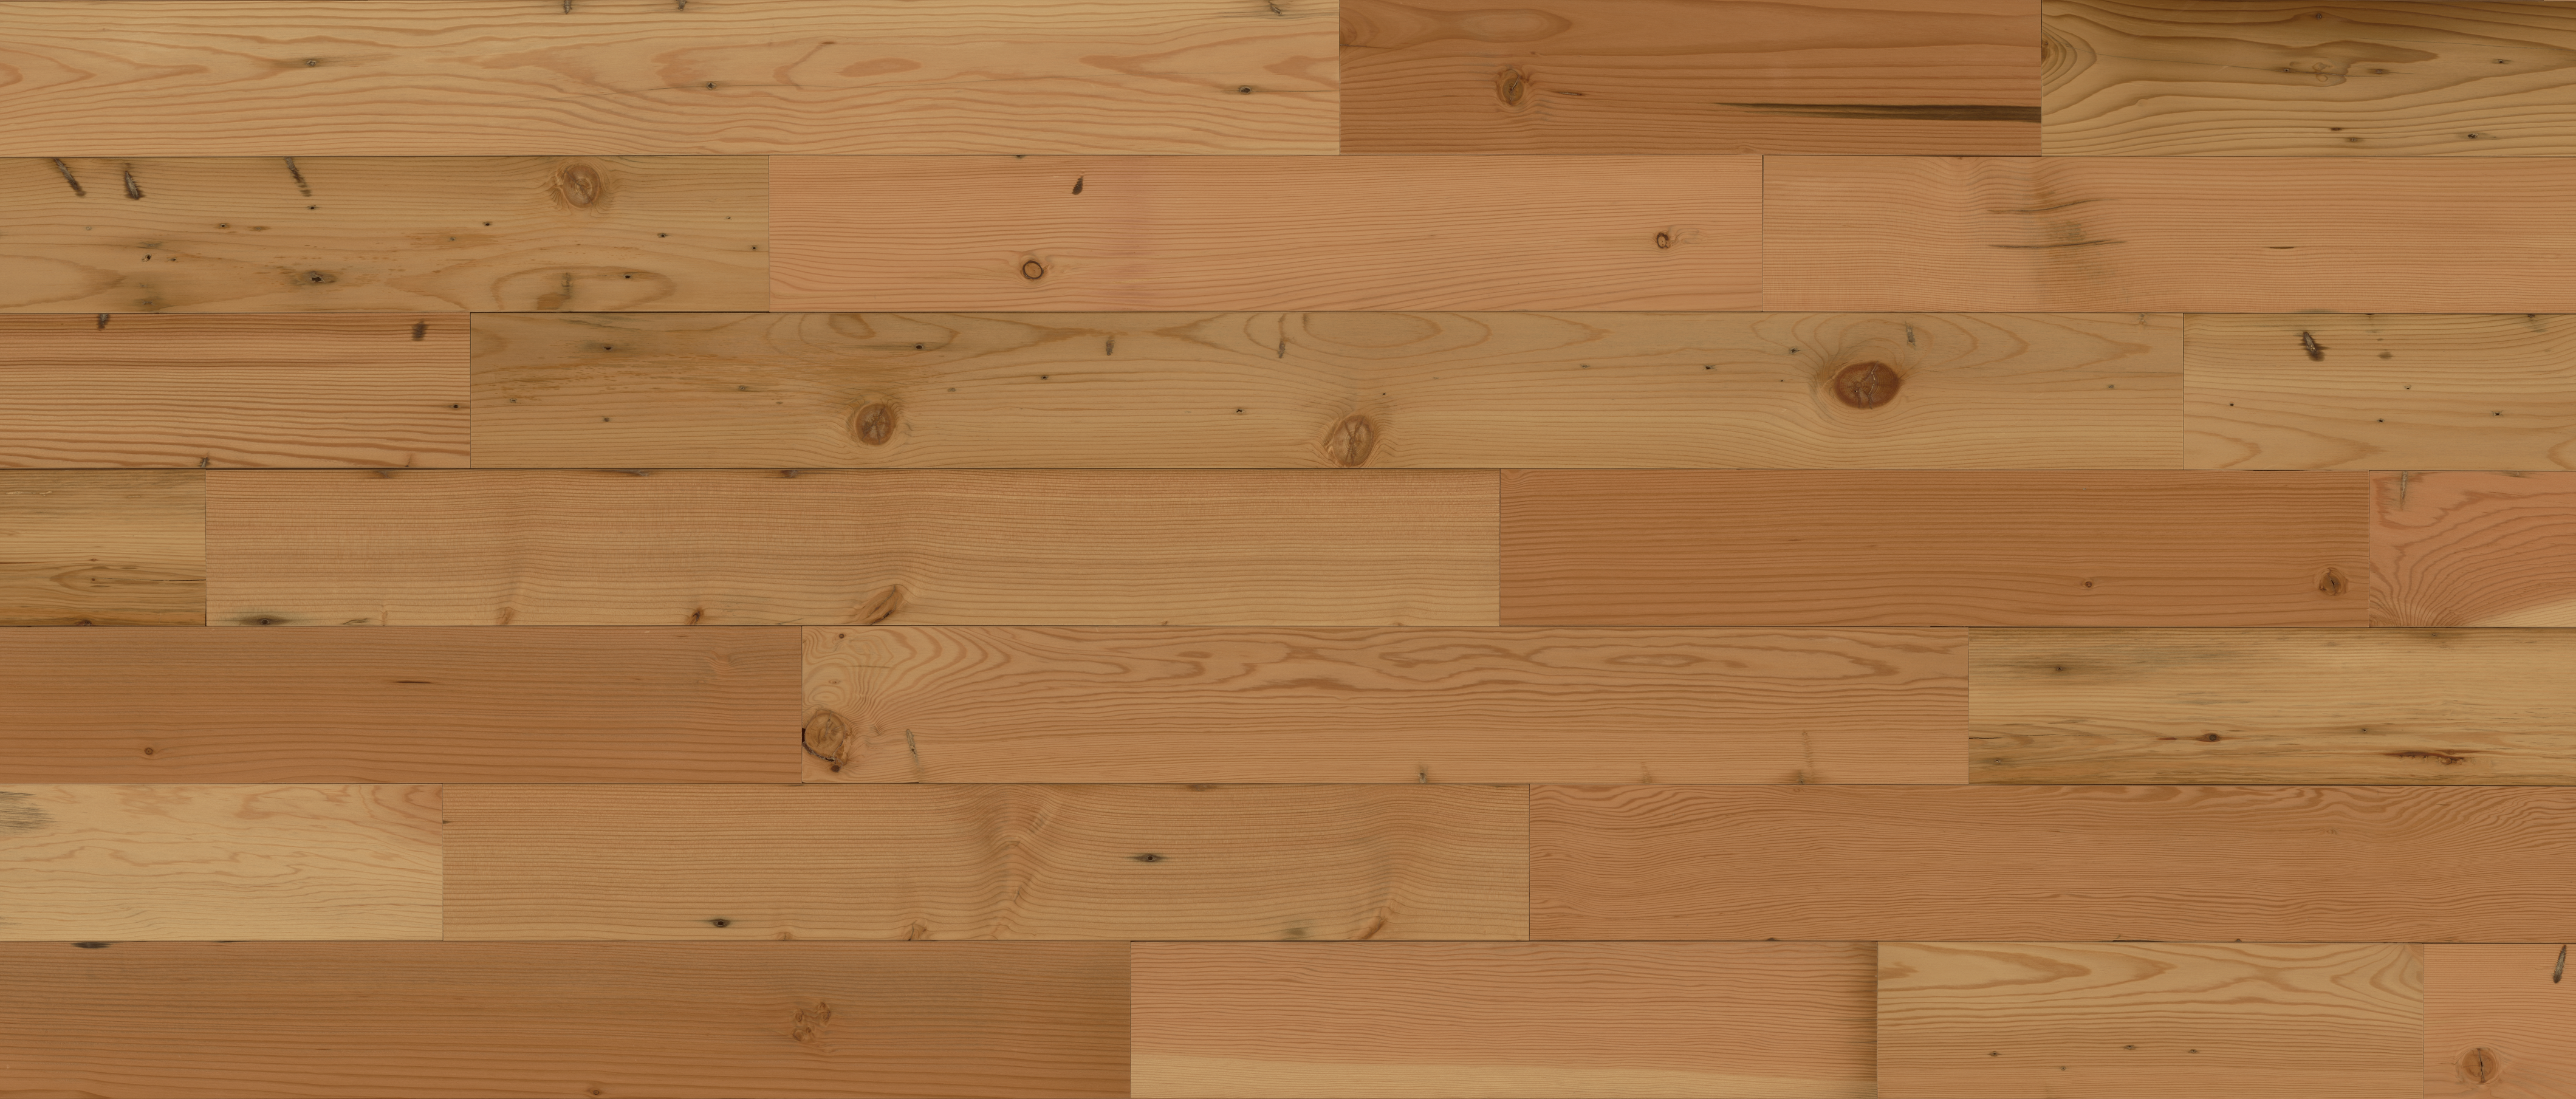 Stikwood Reclaimed Natural material explorer | real reclaimed douglas for peel and stick wood wall and ceiling planks with gold, yellow, tan and brown colors.